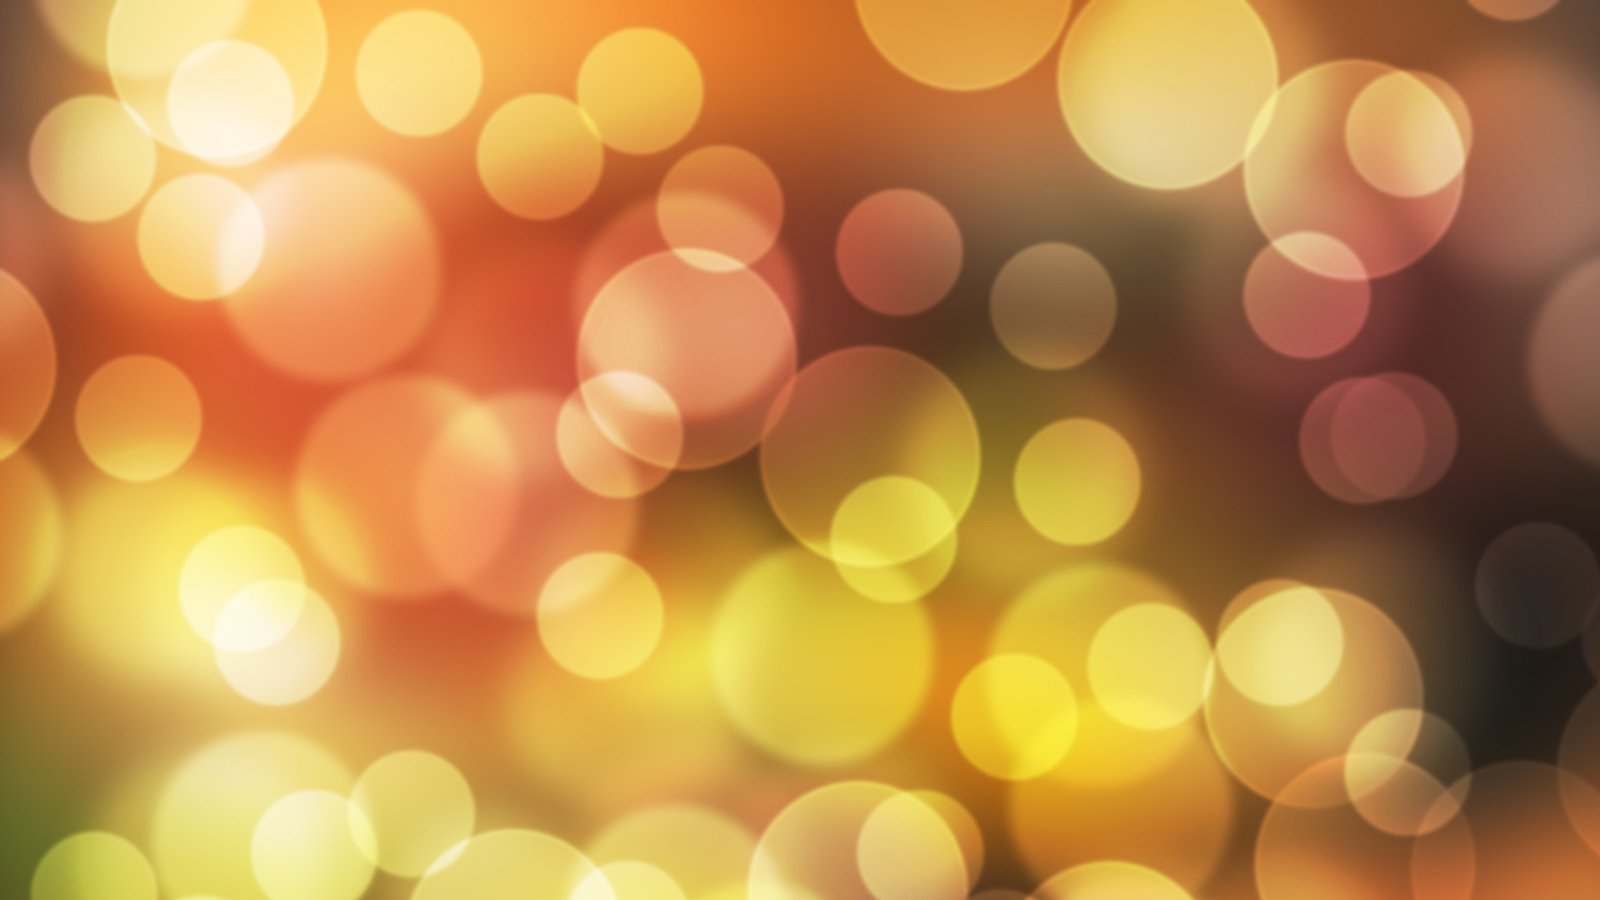 Animated Christmas Lights Wallpaper Free Bokeh Background Pattern Stock Photo Freeimages Com